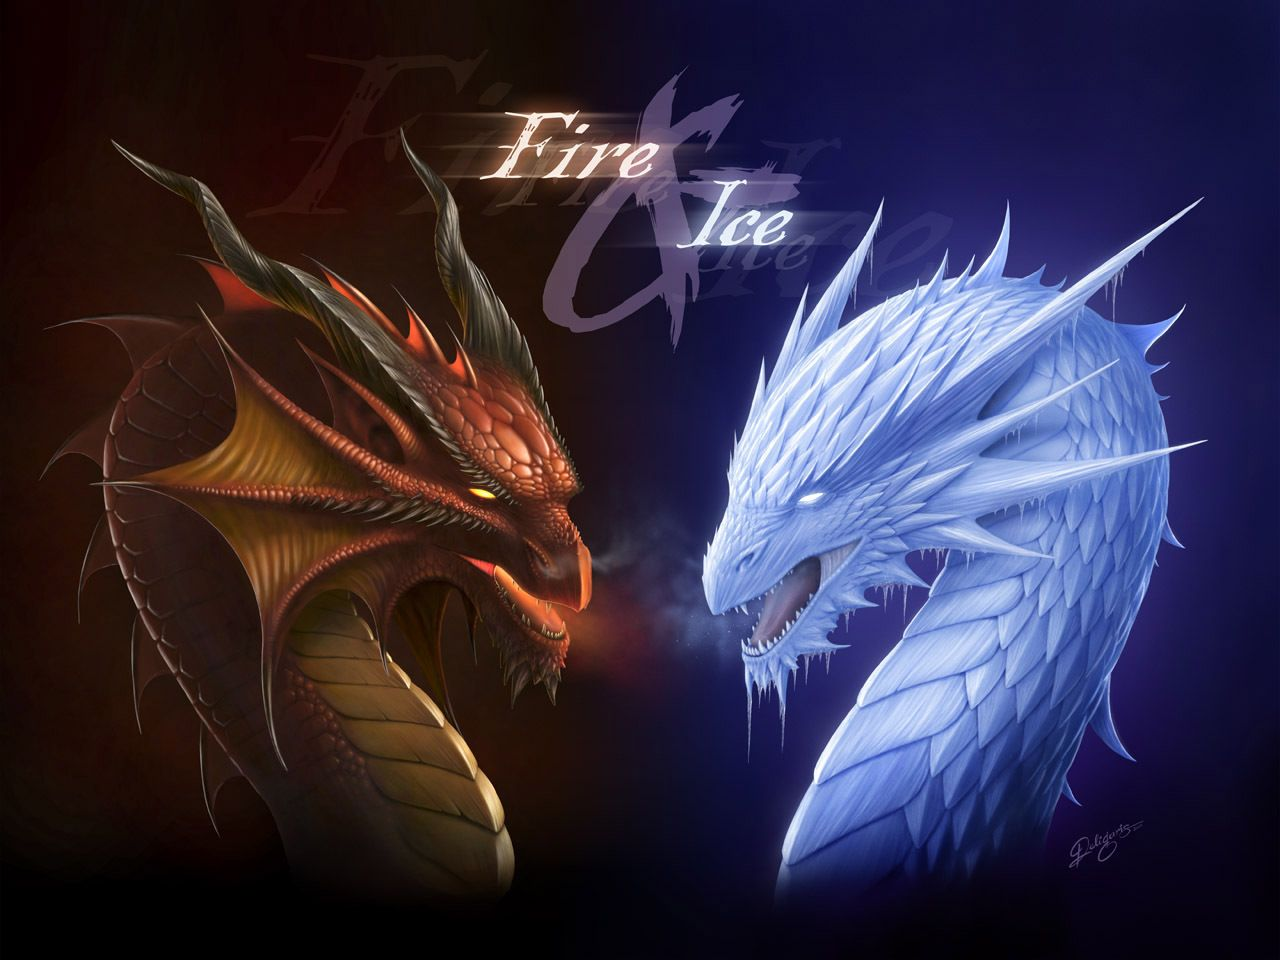 1280x960 Fire And Ice Dragons Images Fire And Ice Dragons HD Wallpaper And .